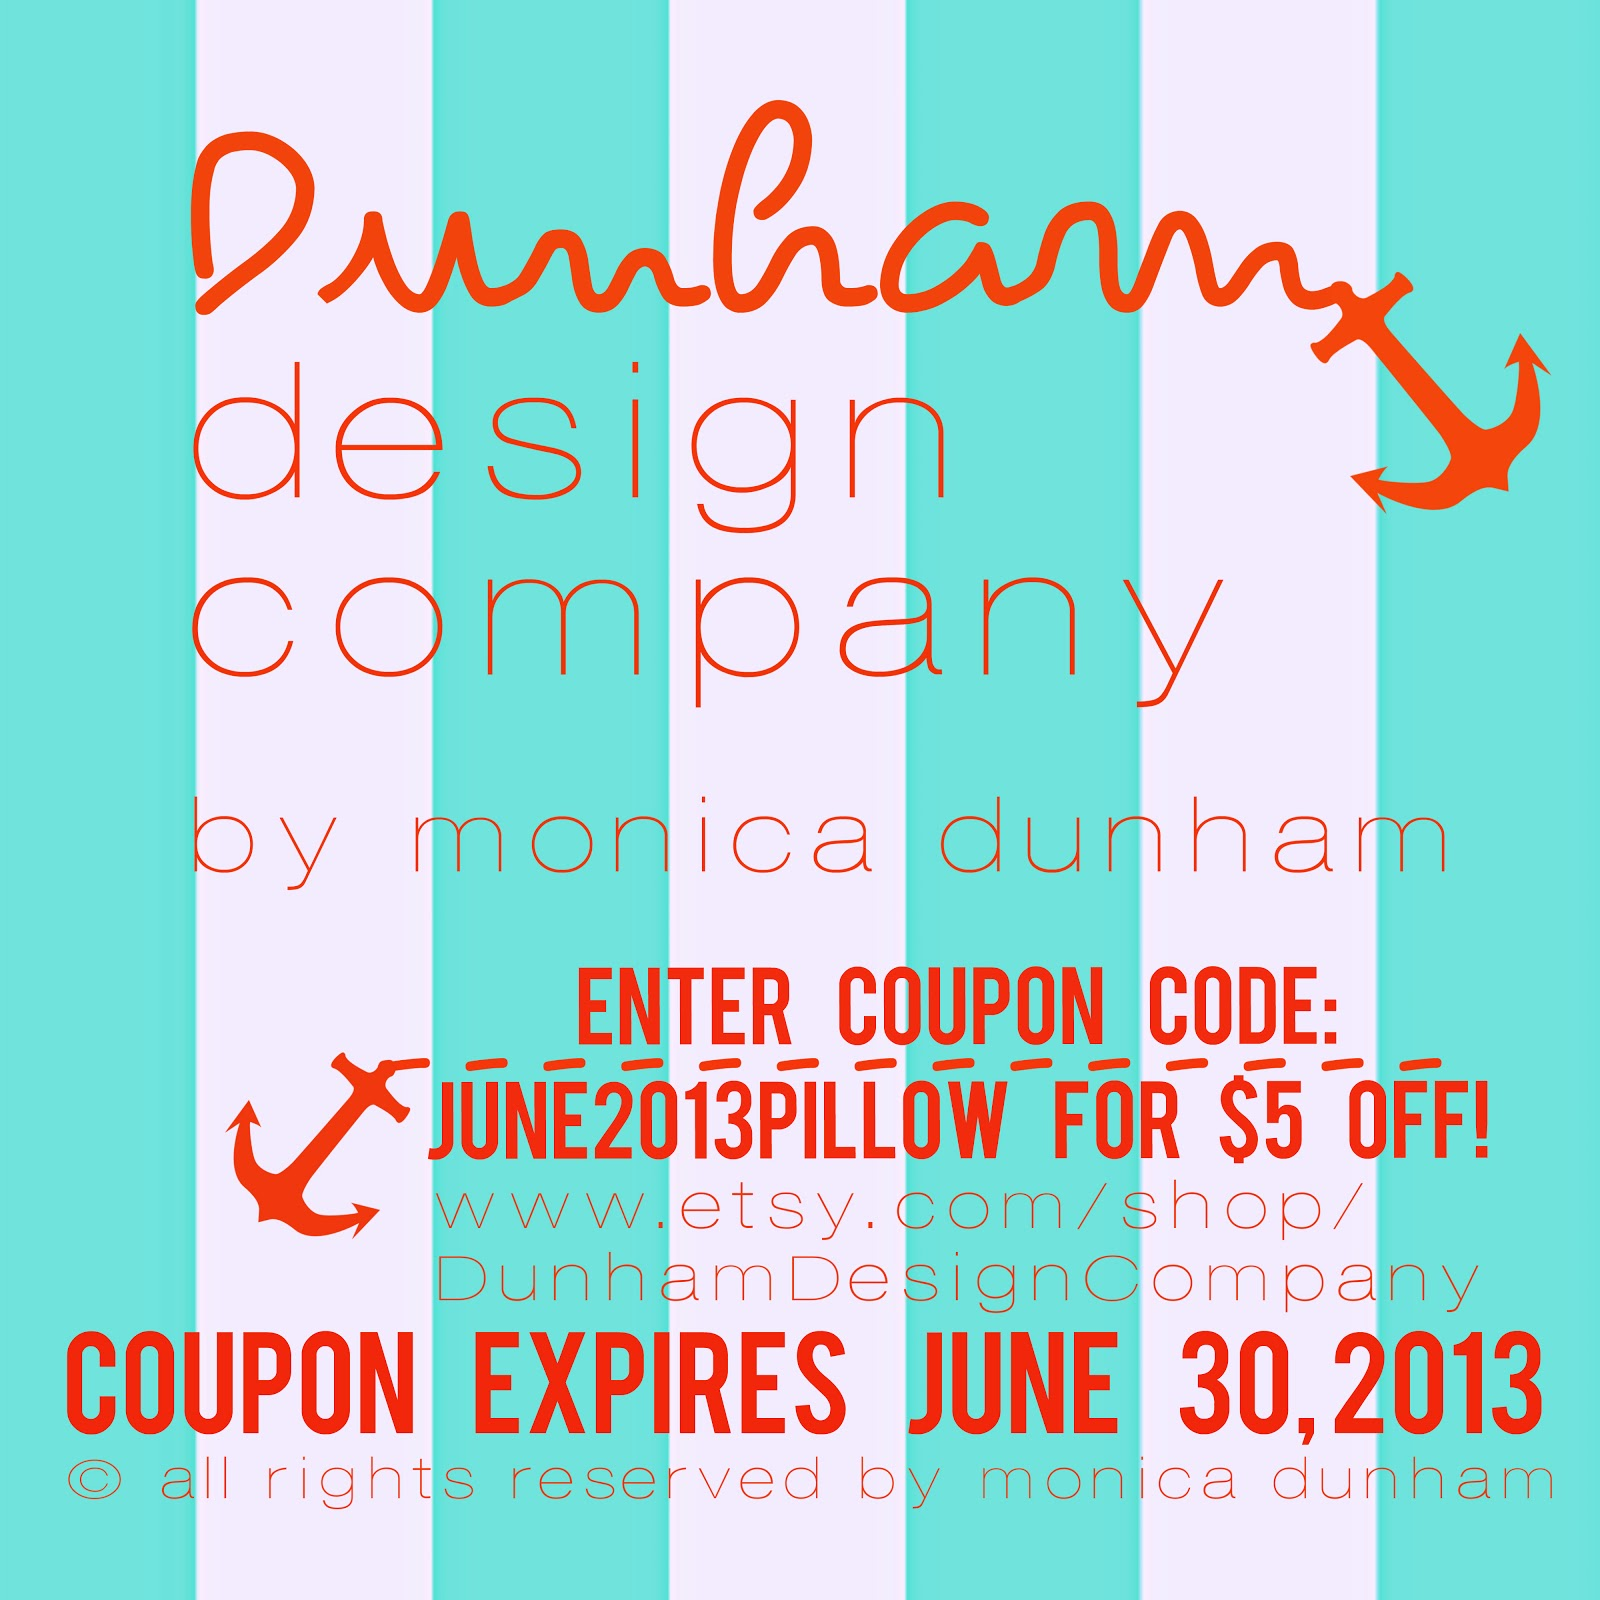 Home Decorating Company Coupon 28 Images Promo Code For Home Decorators Collection The Home